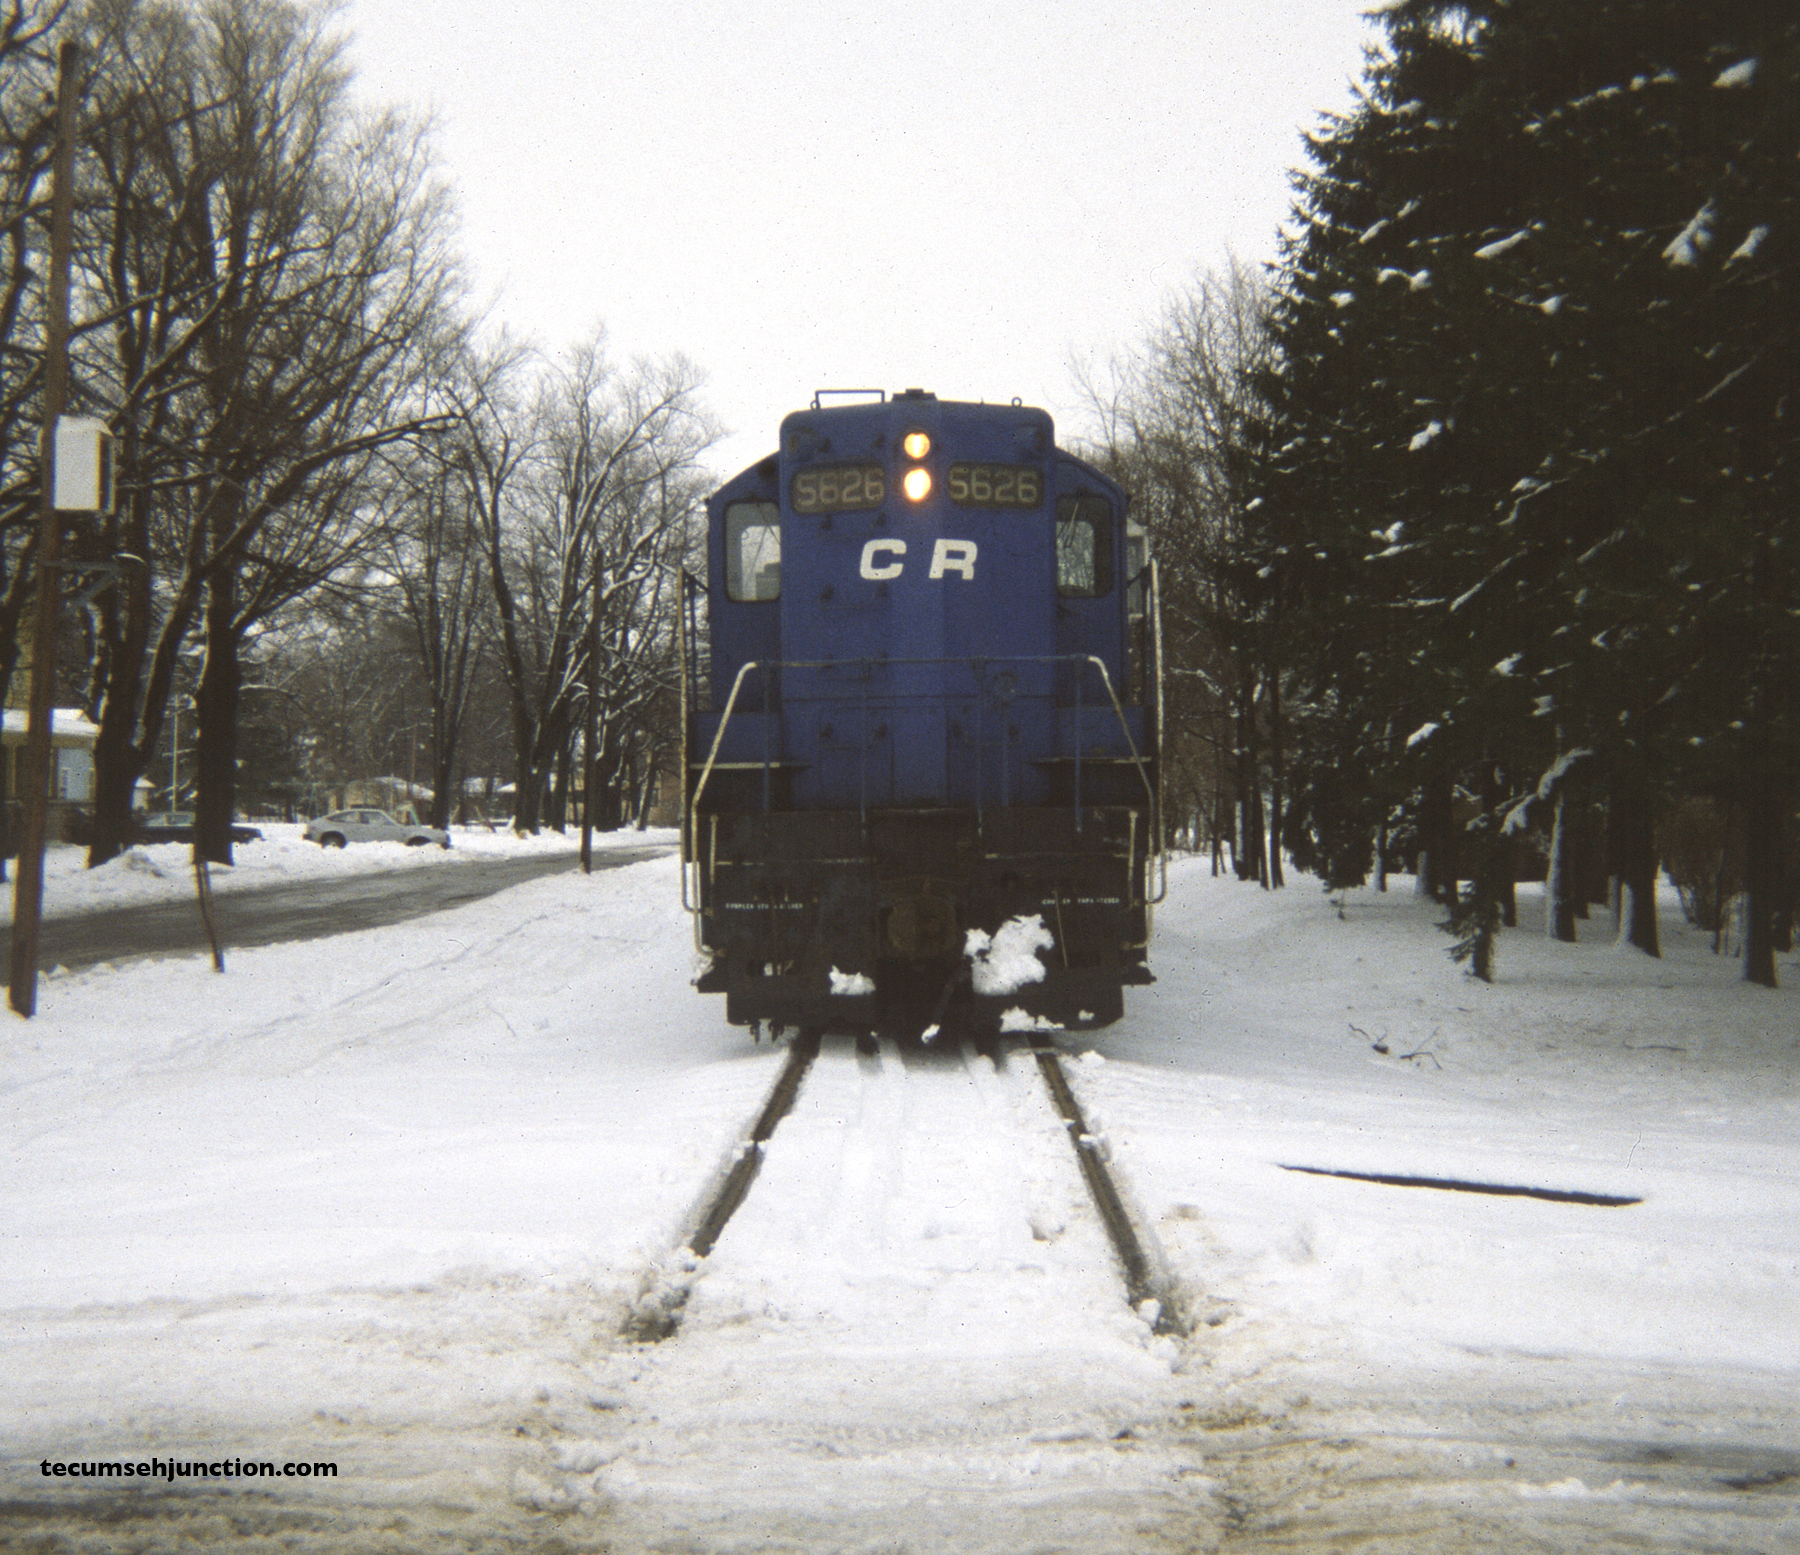 Conrail 5626 pauses for dinner at Blissfield, Michigan. (12 December 1981)